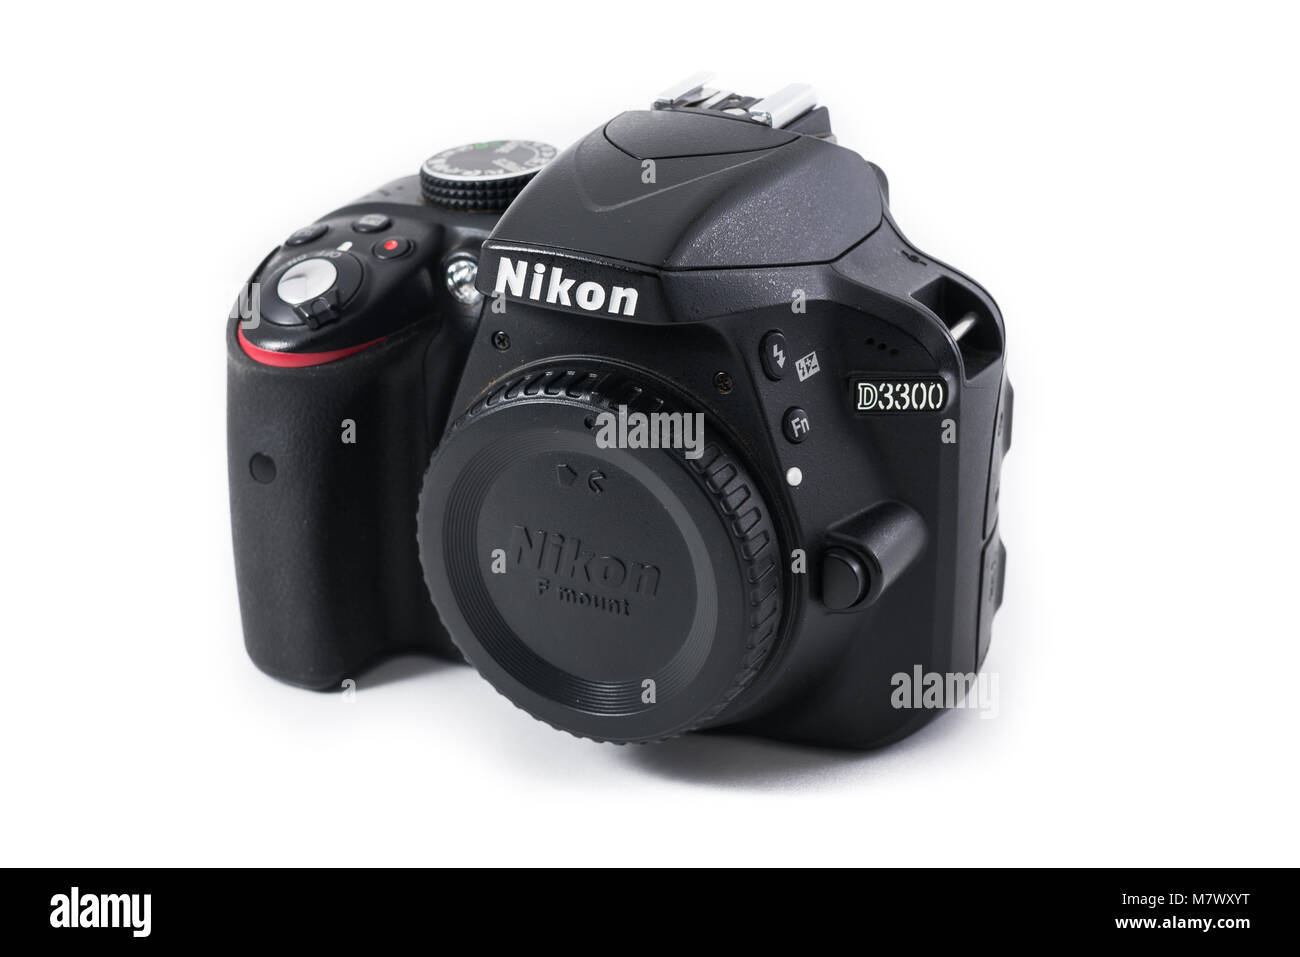 A Nikon D3300 digital APS-C SLR camera body on white seamless background - Stock Image